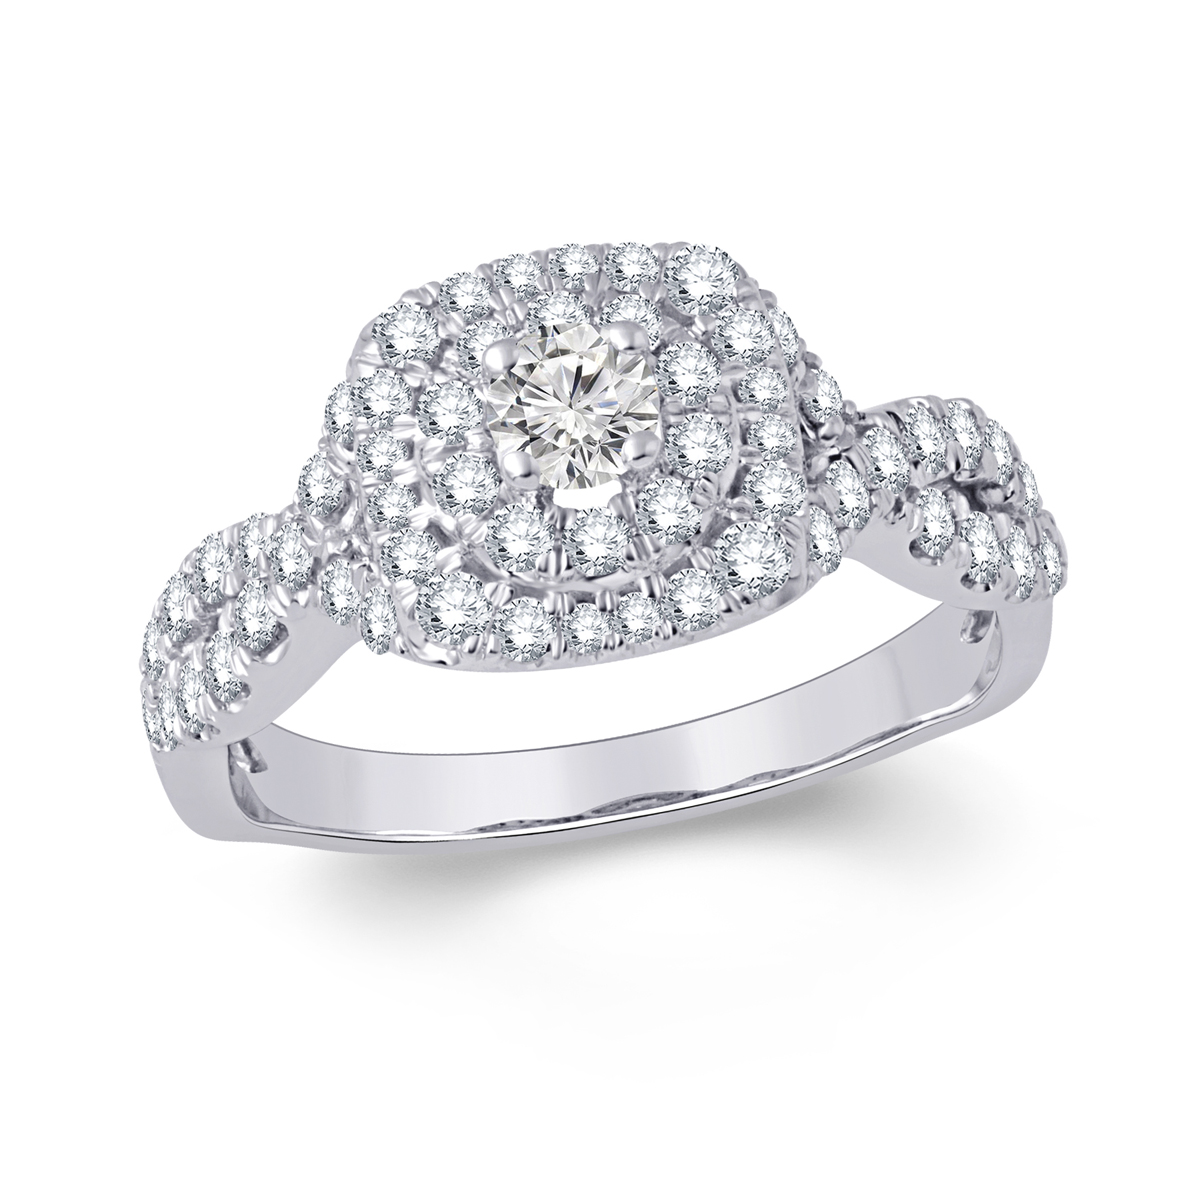 Paramount Gems 14 Karat White Gold Diamond Ring